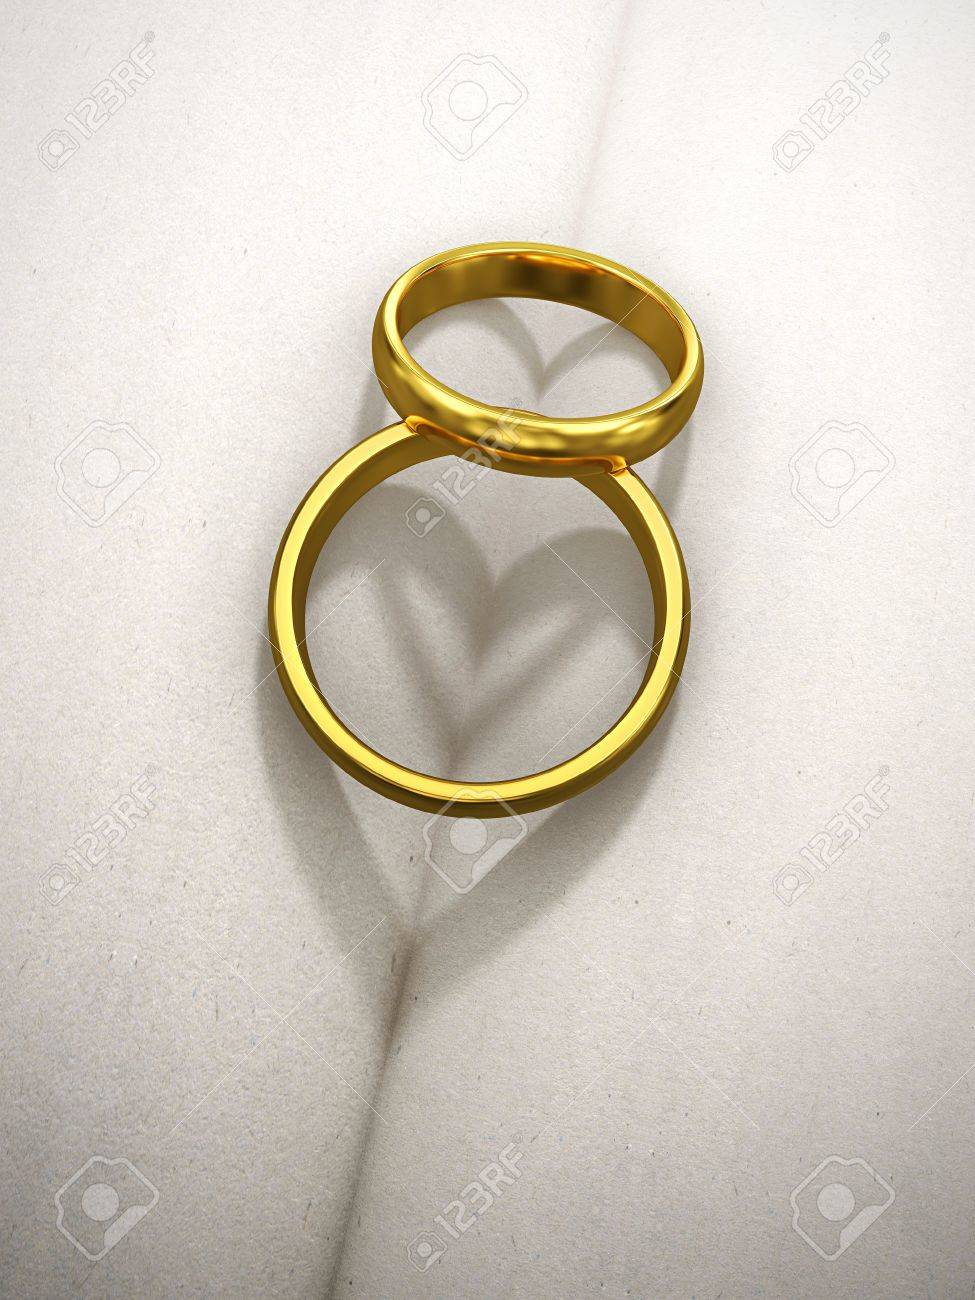 Christian Wedding Ring: Two Golden Wedding Rings With Heart Shaped Shadow  Stock Photo